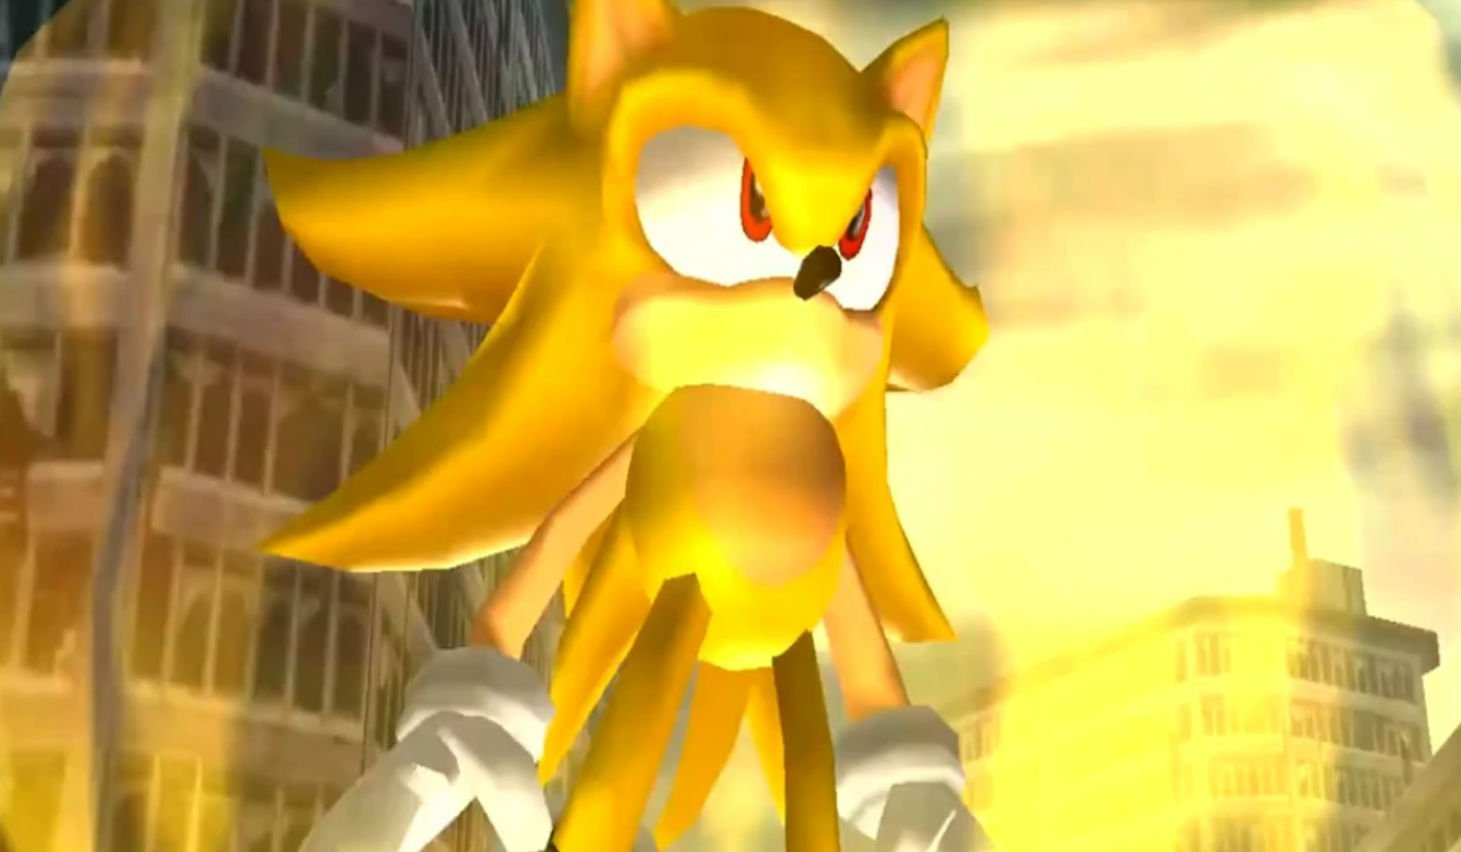 Super Sonic didn't feel right in the debut Sonic film, director says screenshot